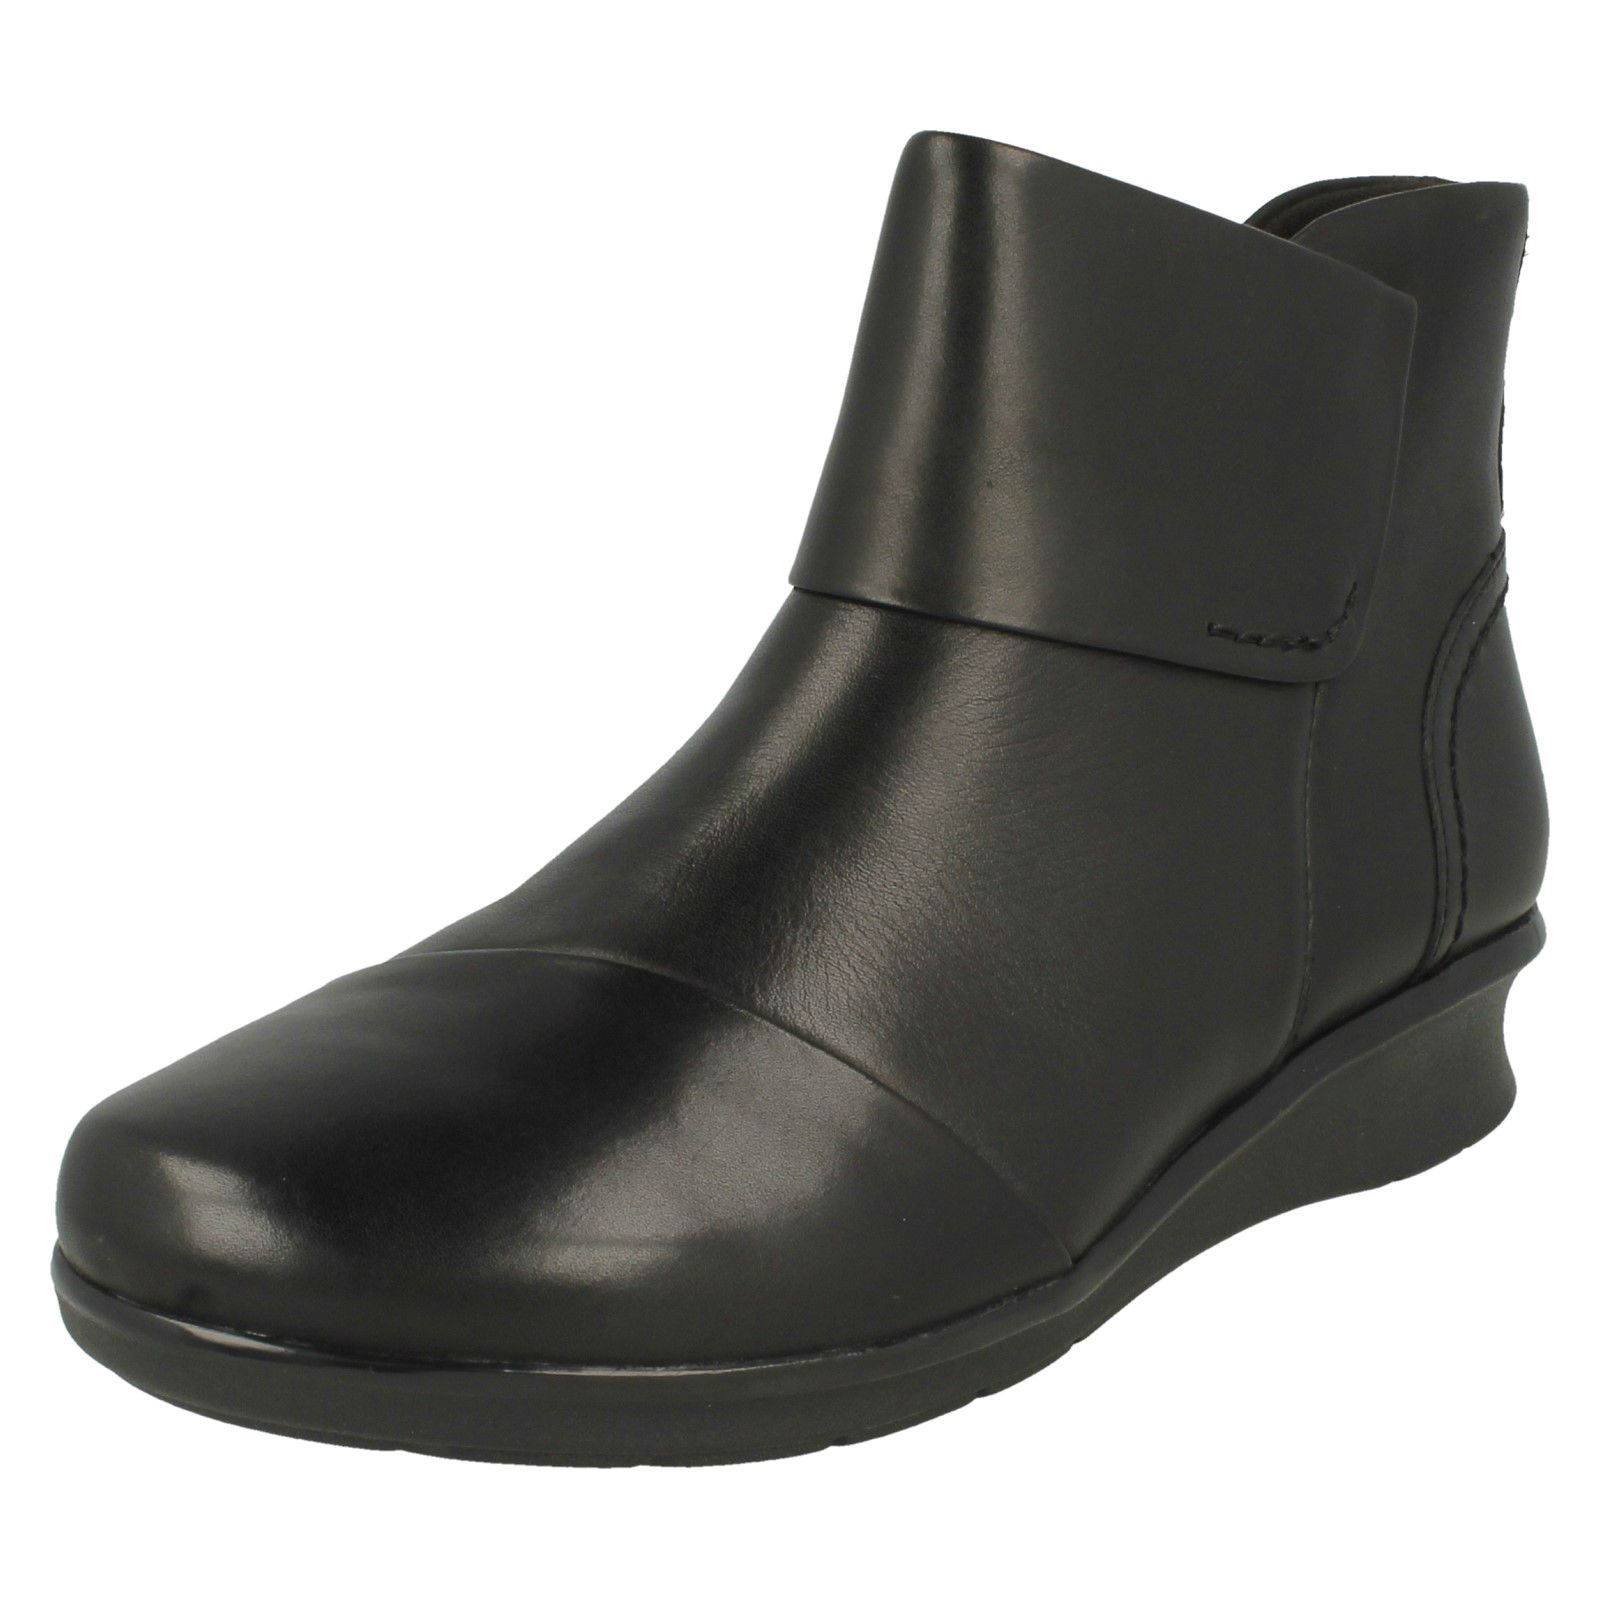 Ladies Clarks' Ankle Boots -Hope Track